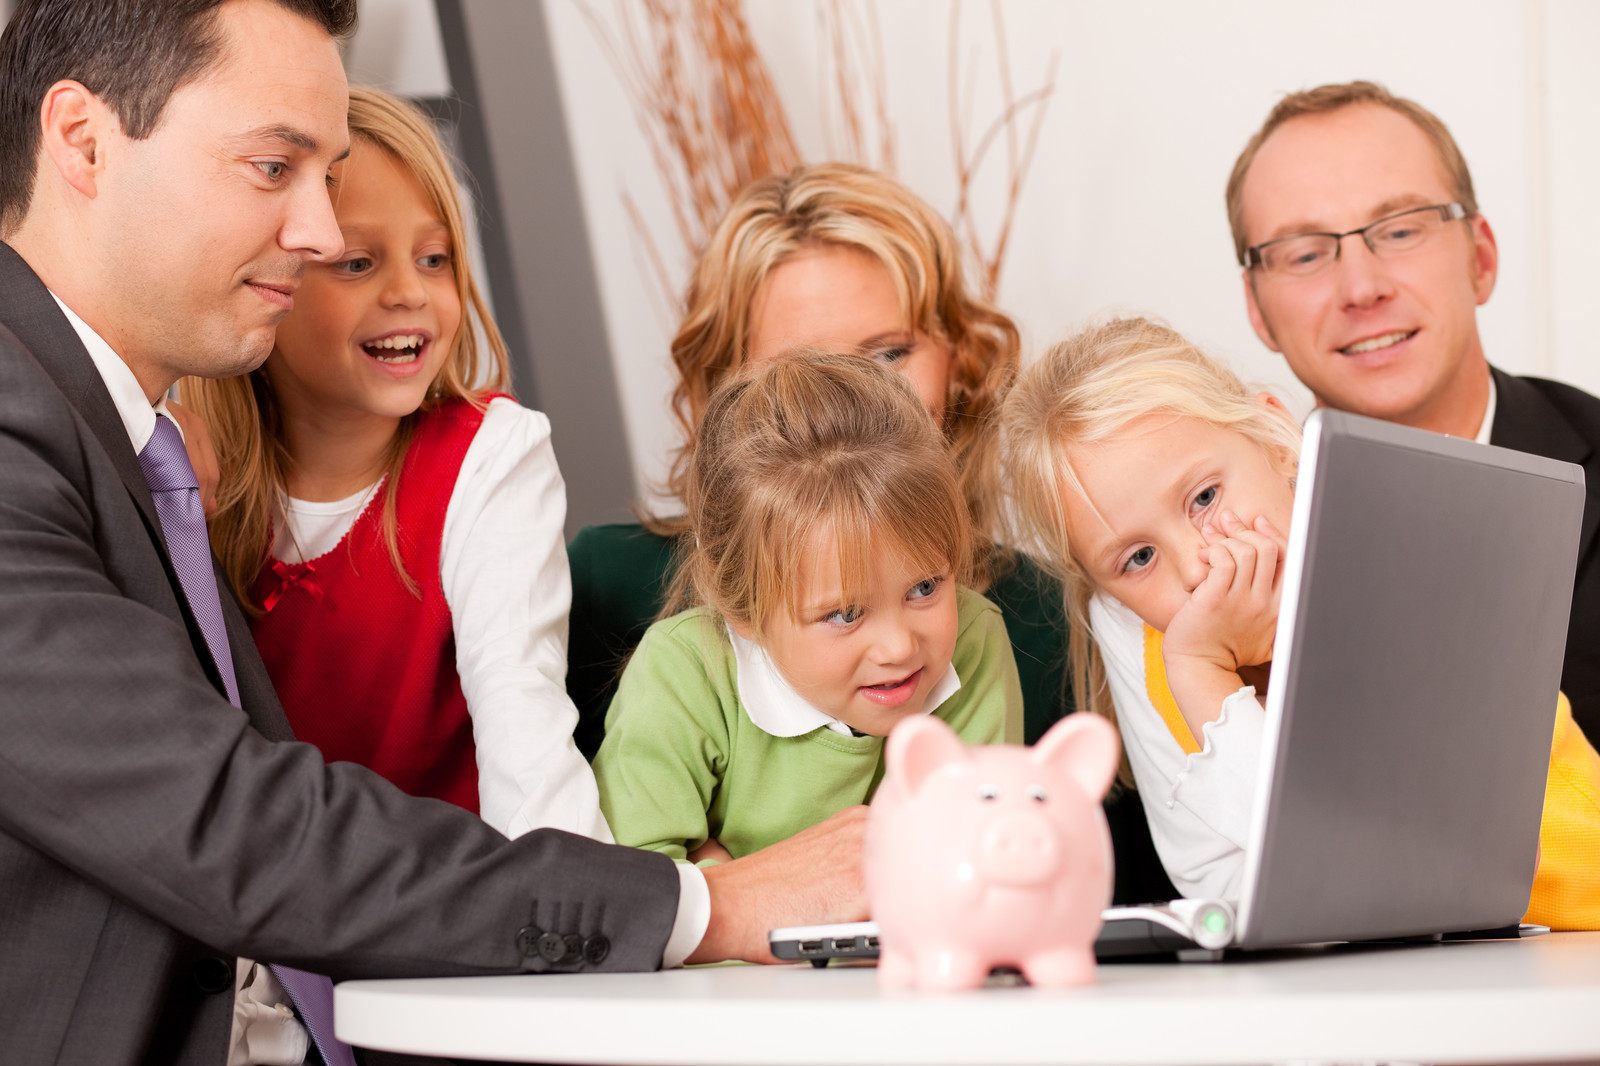 Family around a computer with a piggy bank